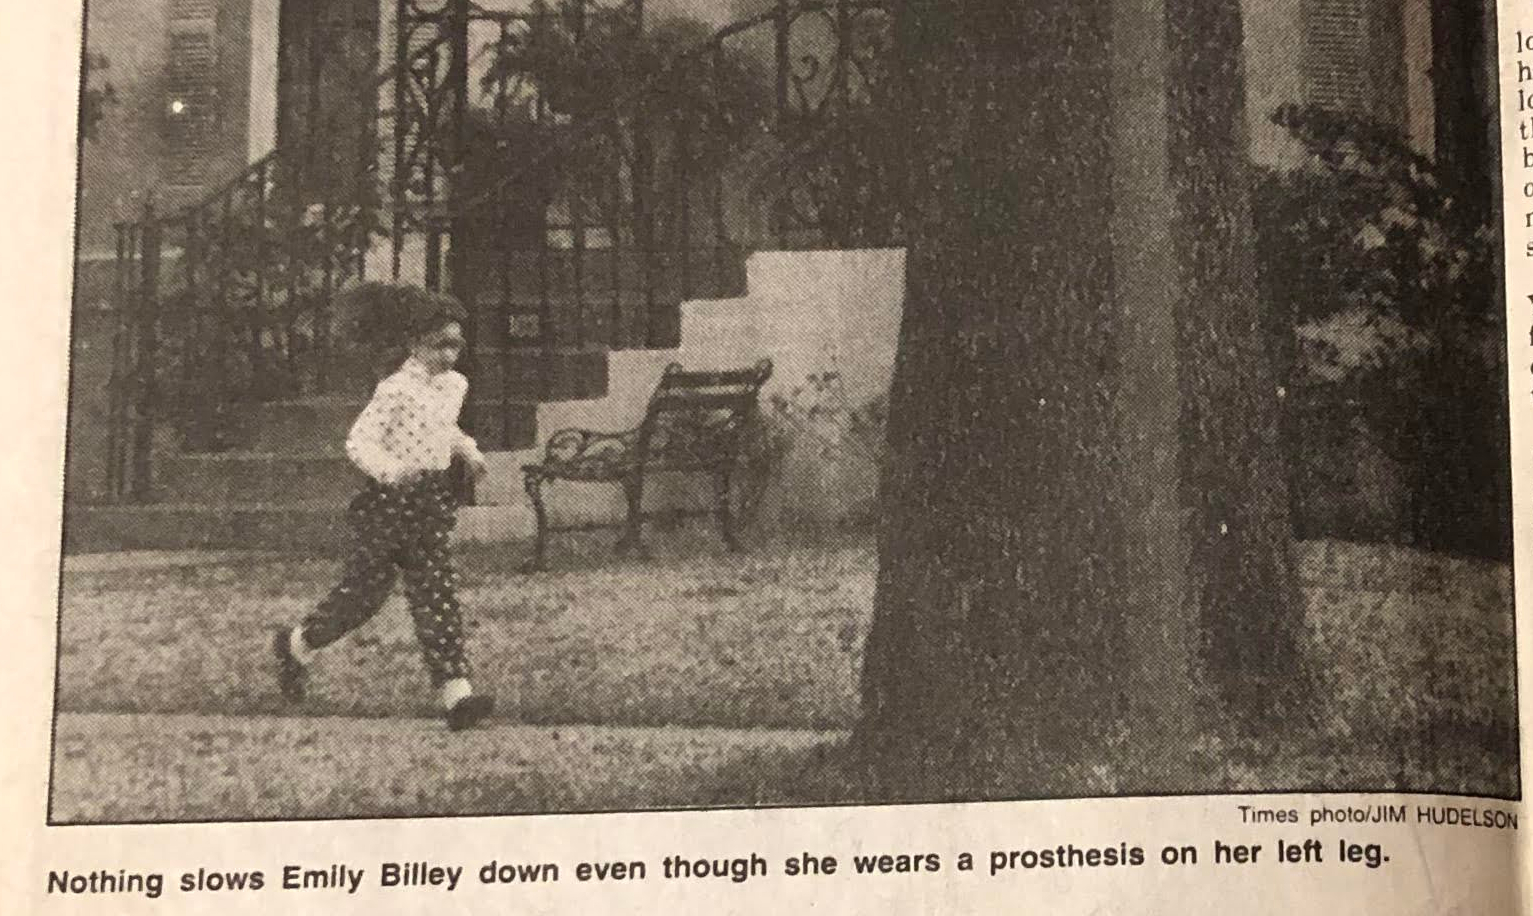 """Photo of me running down the sidewalk in an amazing polka dot outfit with text below that reads: """"Nothing slows Emily Billey down even though she wears a prosthesis on her left leg."""""""